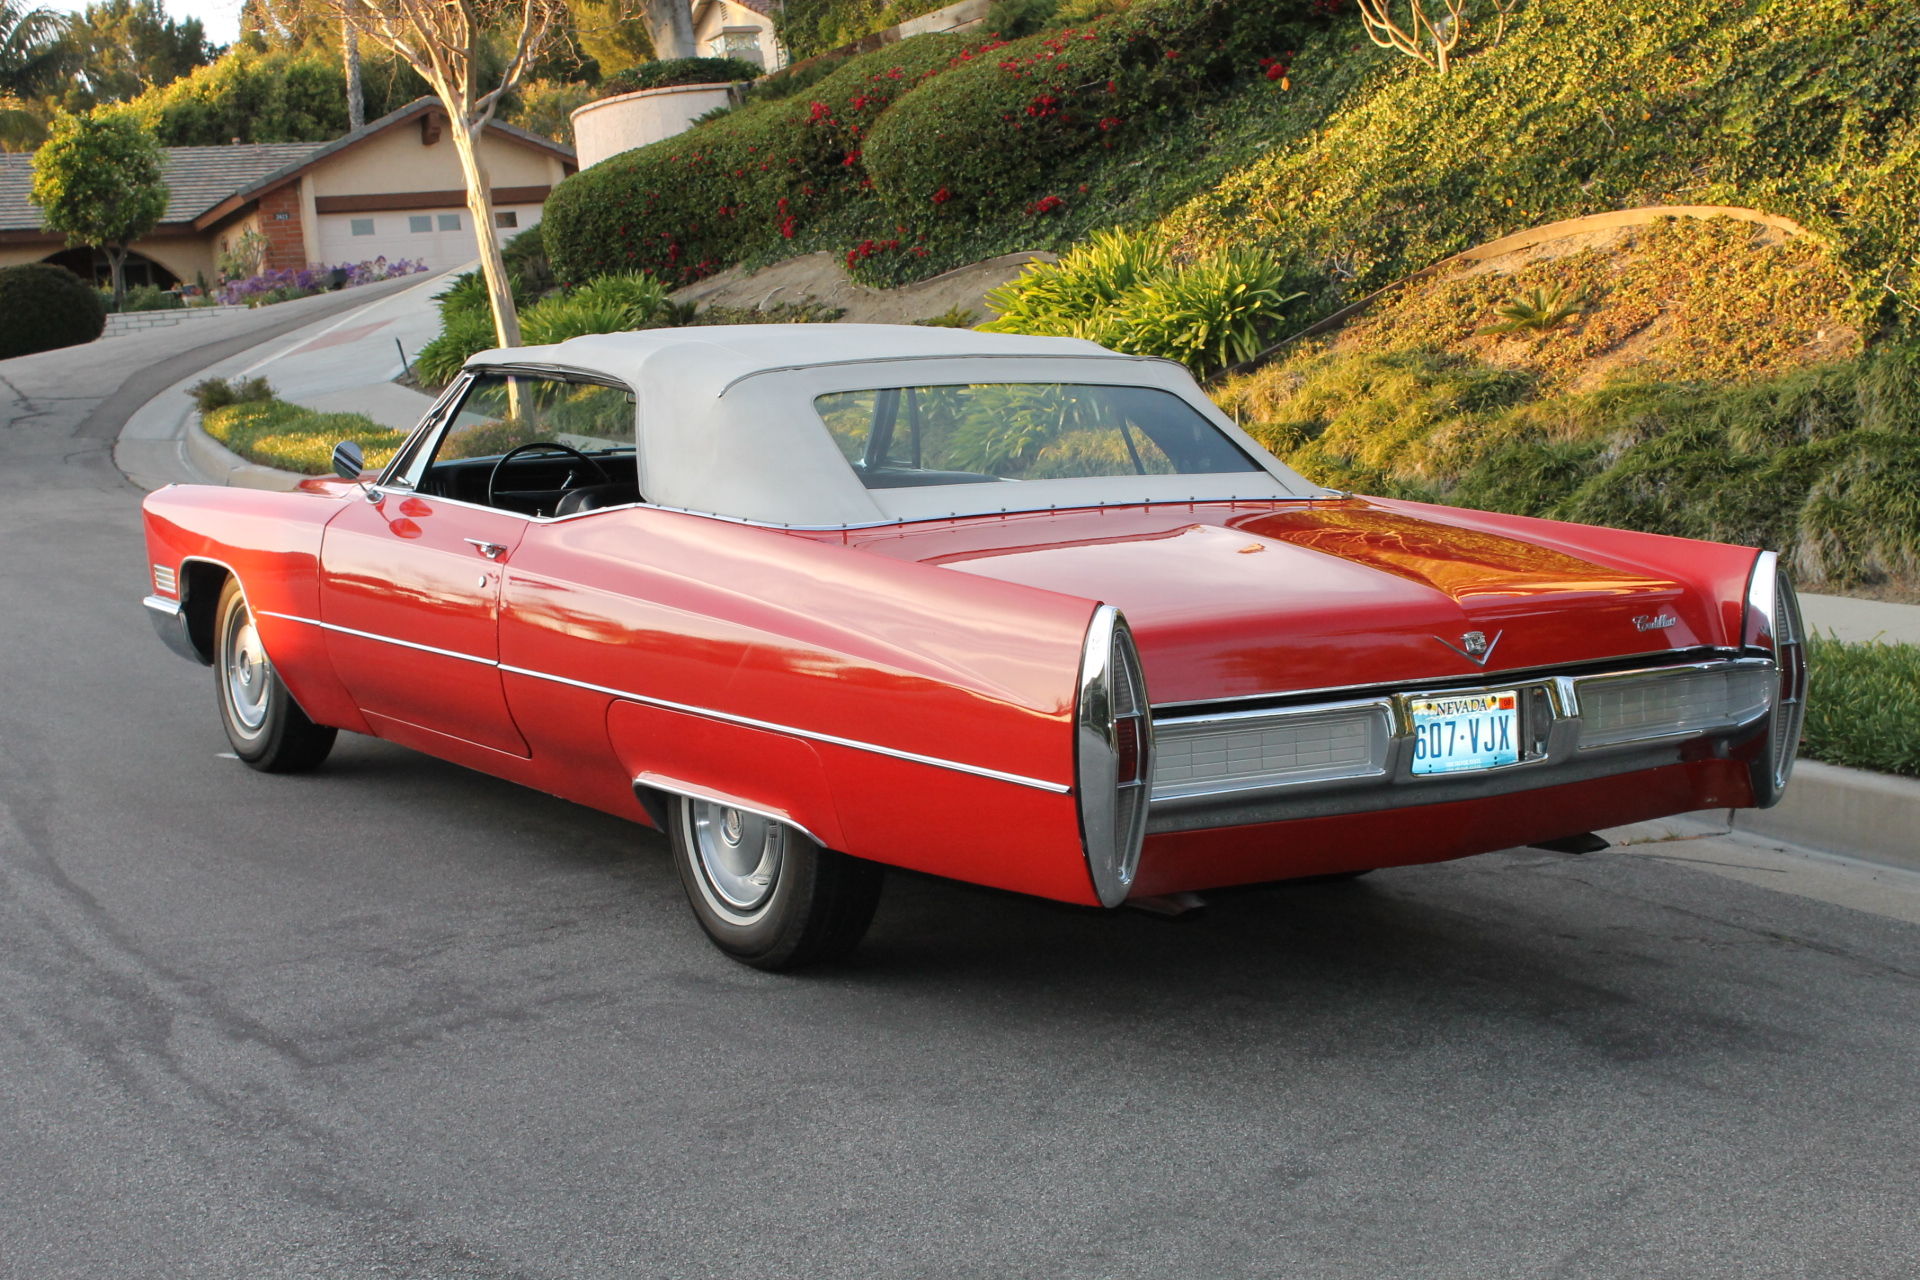 1967 cadillac convertible the vault classic cars. Black Bedroom Furniture Sets. Home Design Ideas